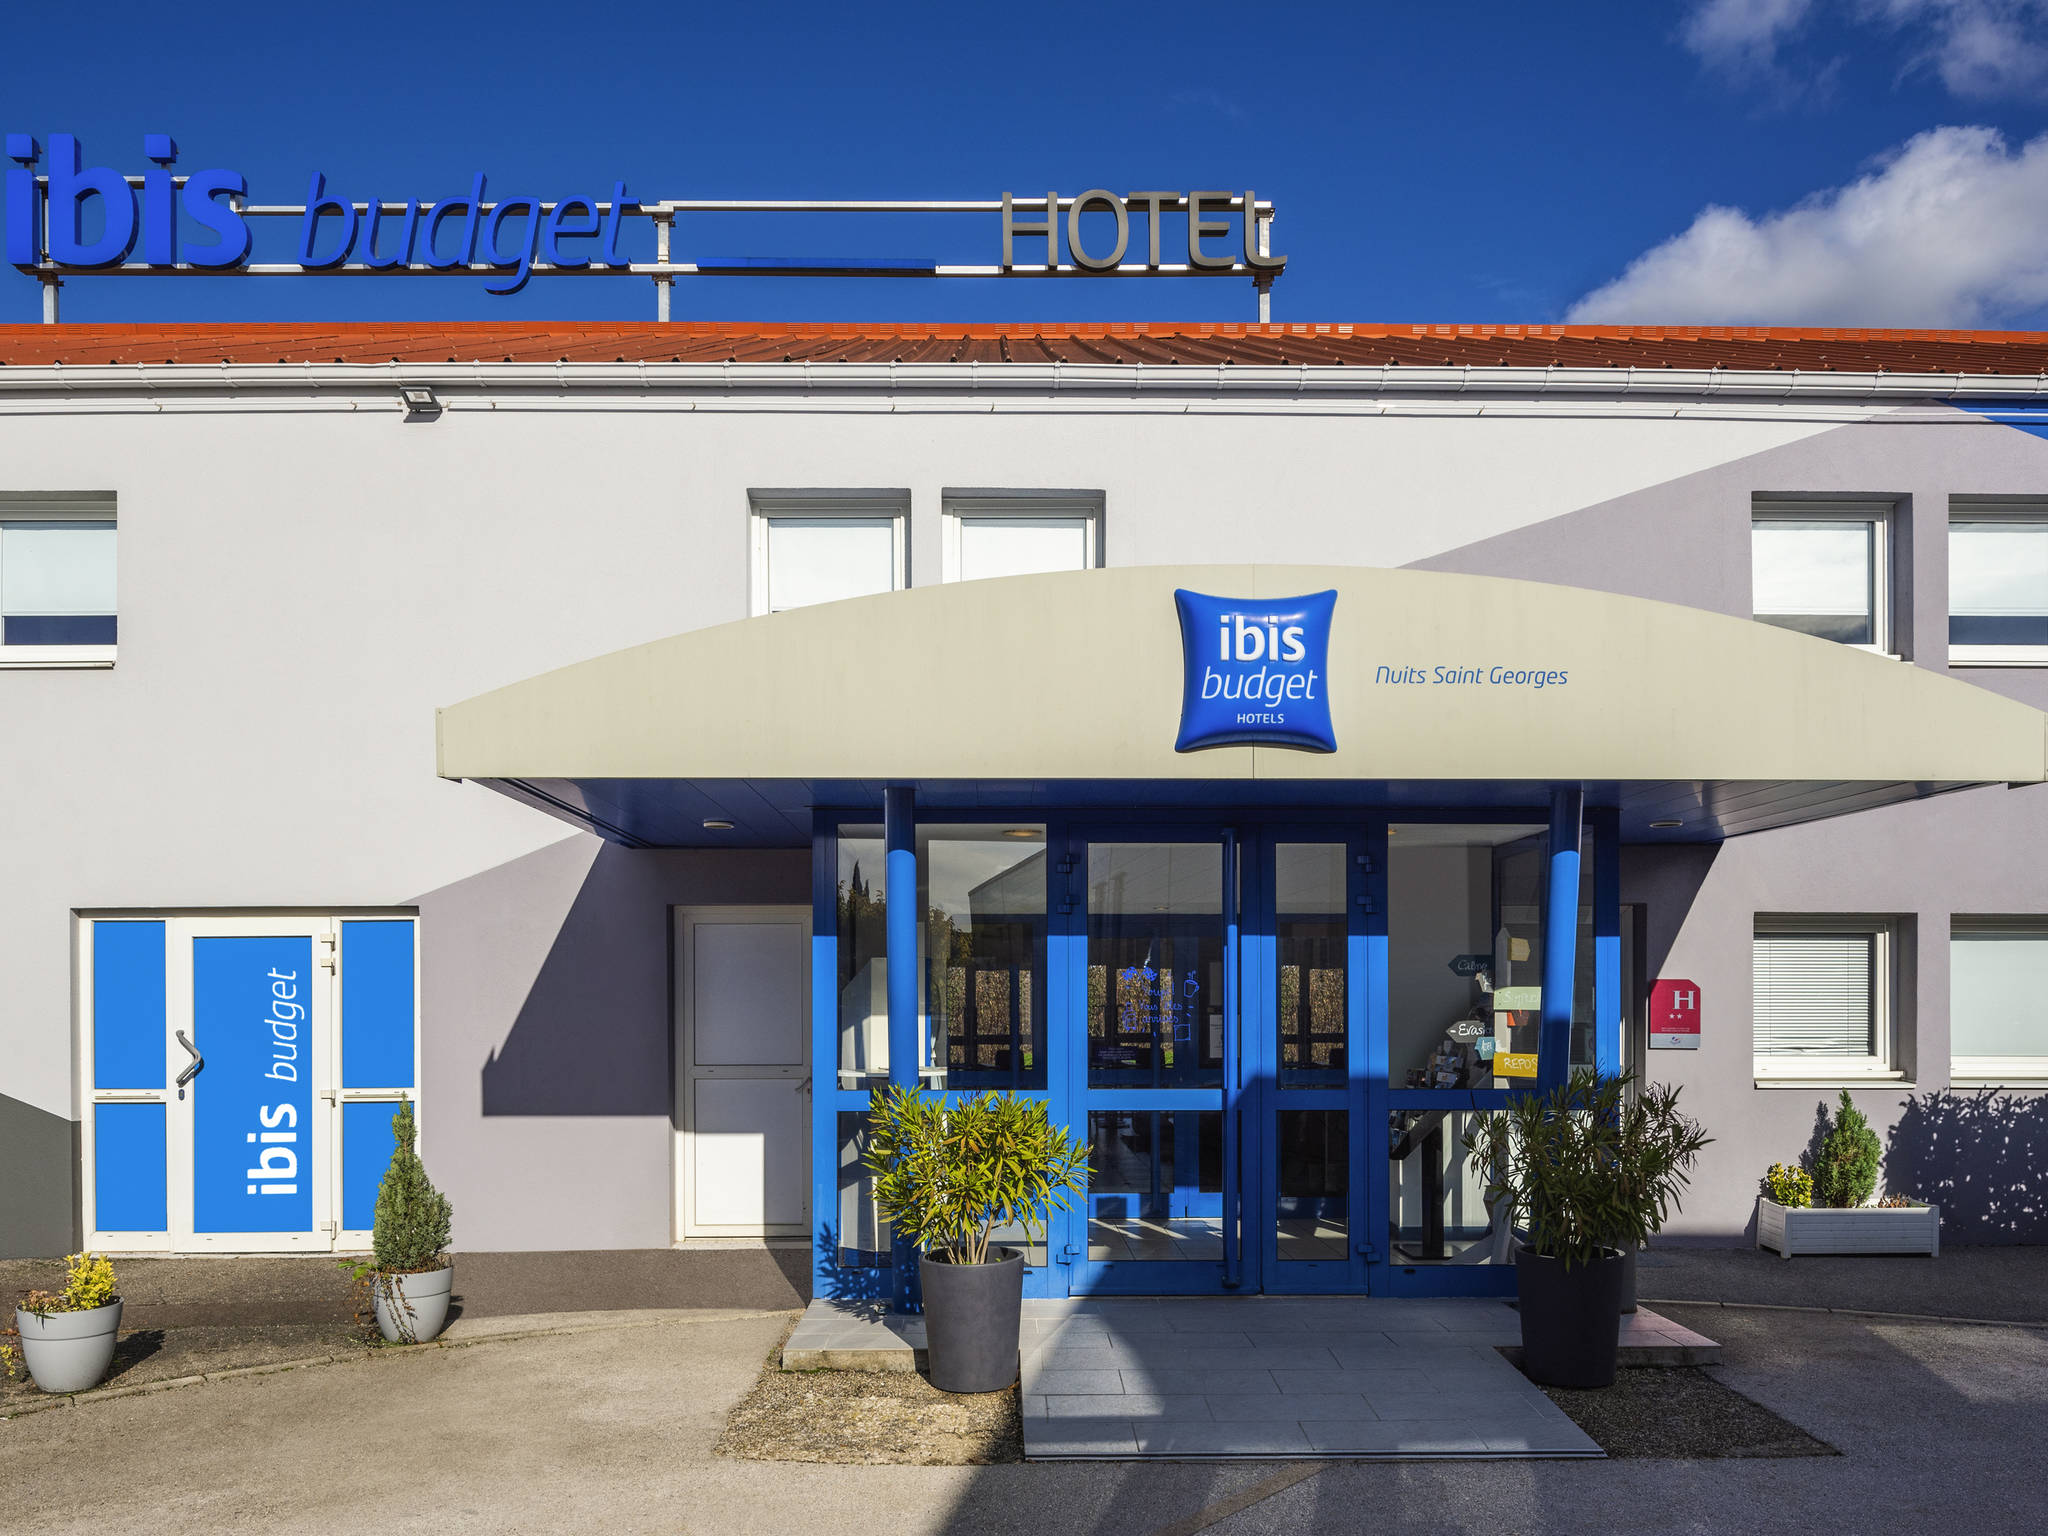 Hotel – ibis budget Nuits-Saint-Georges